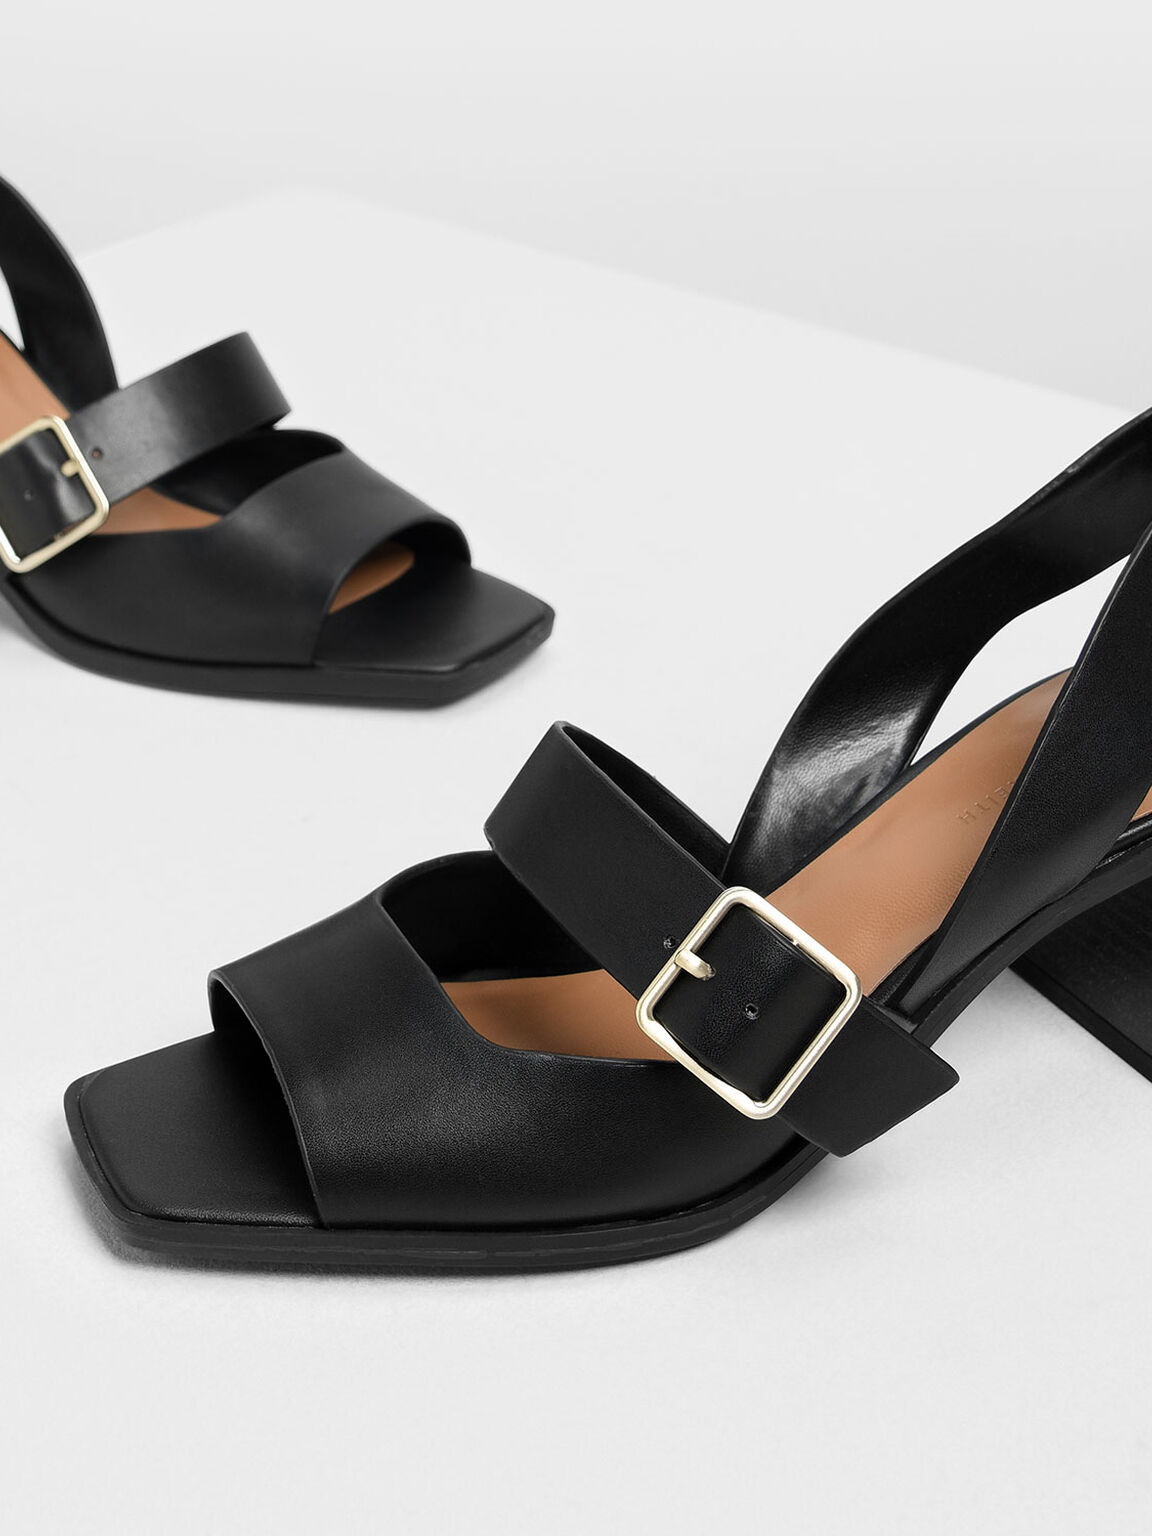 Square Toe Block Heels, Black, hi-res